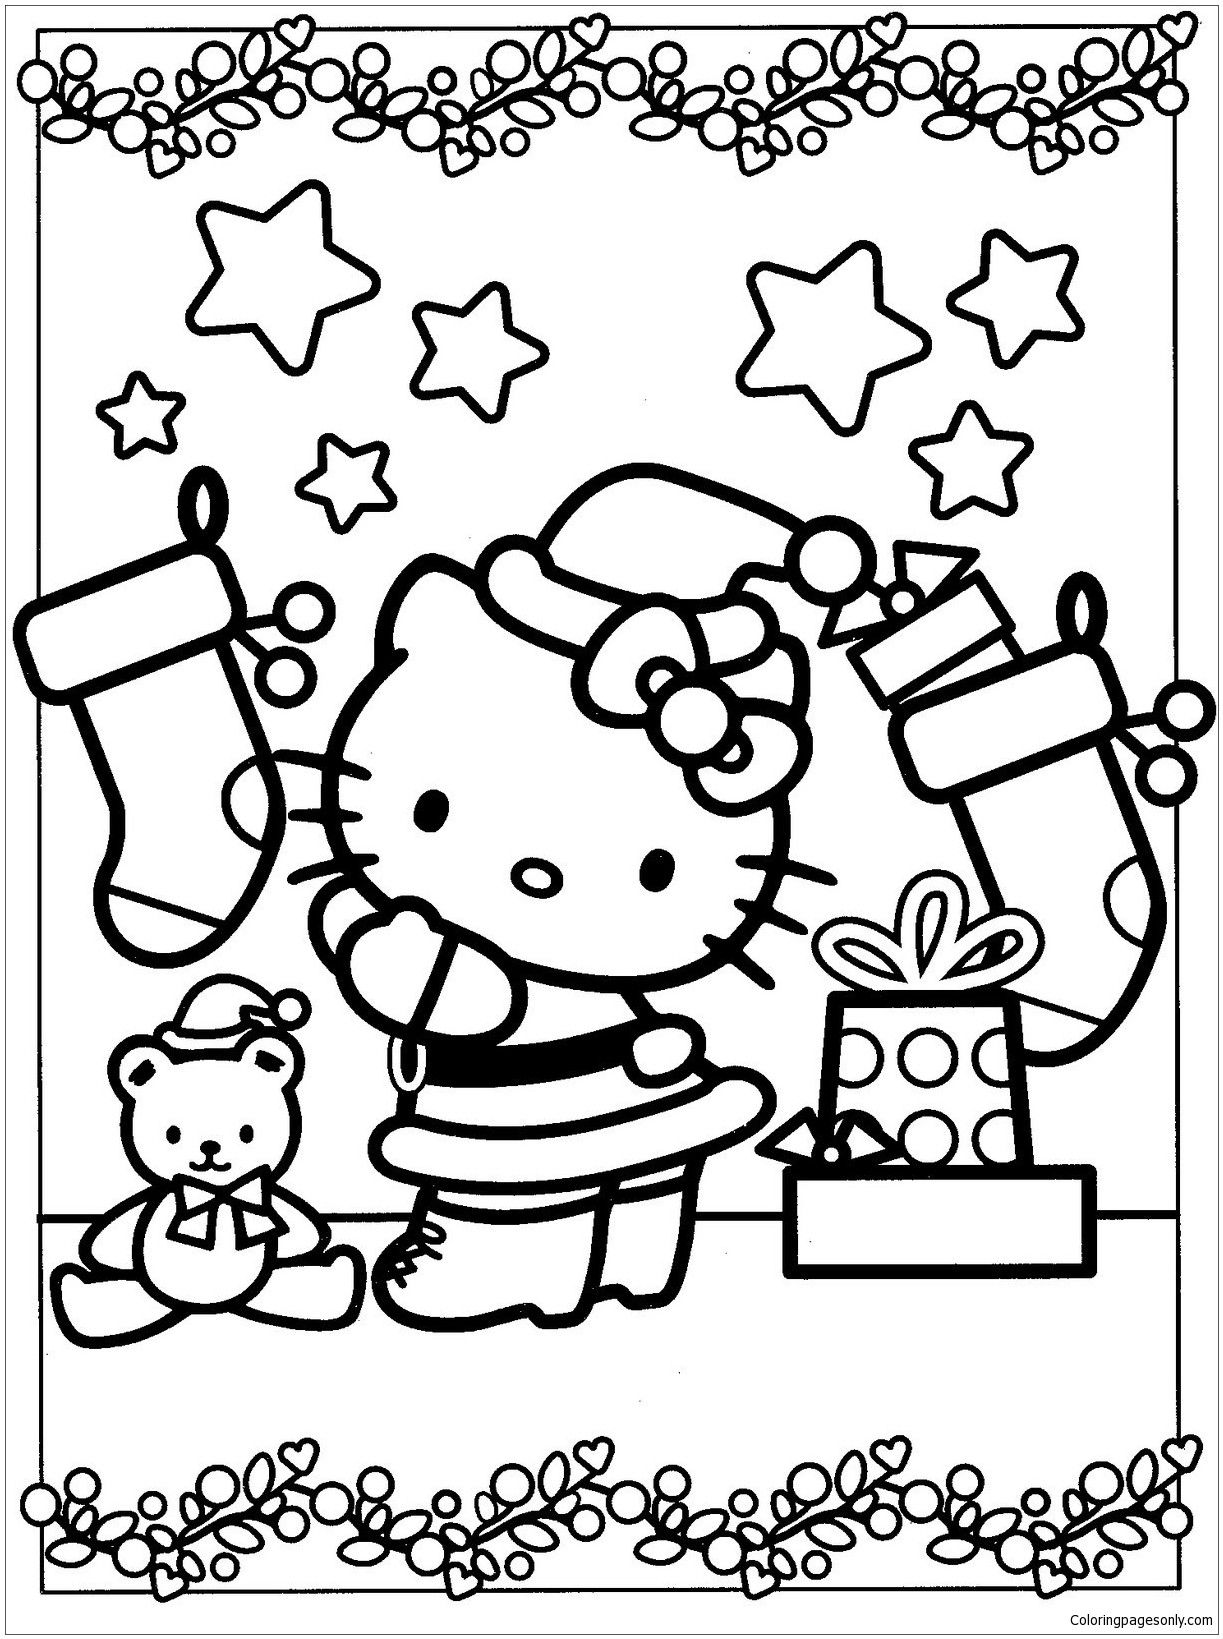 Cat Christmas Coloring Page Youngandtae Com In 2020 Kitty Coloring Hello Kitty Coloring Hello Kitty Colouring Pages